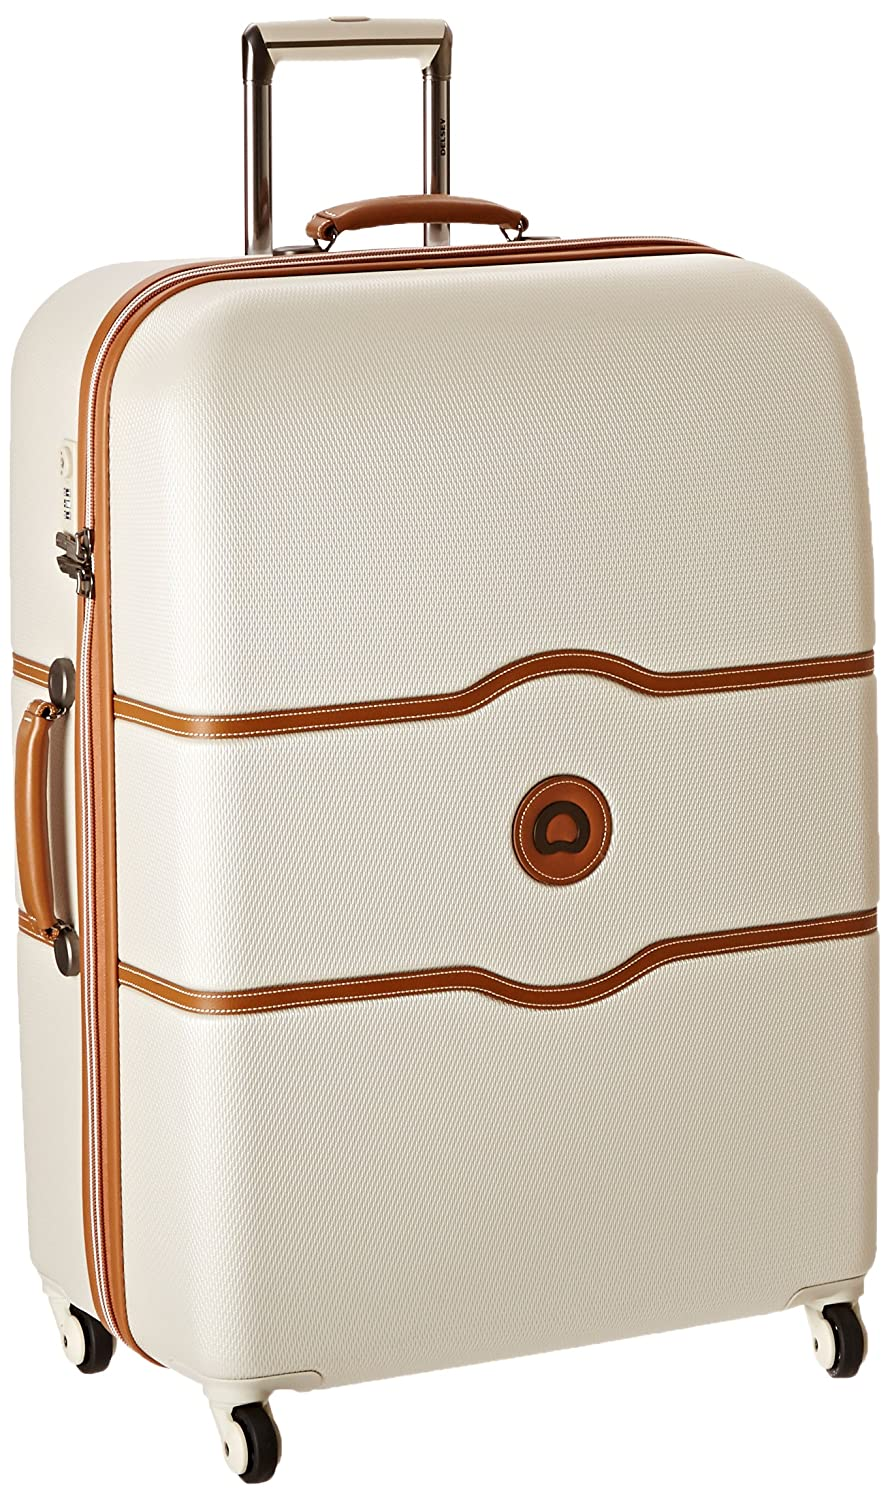 DELSEY Paris Delsey Luggage Chatelet 28 Inch Spinner Trolley Champagne One Size